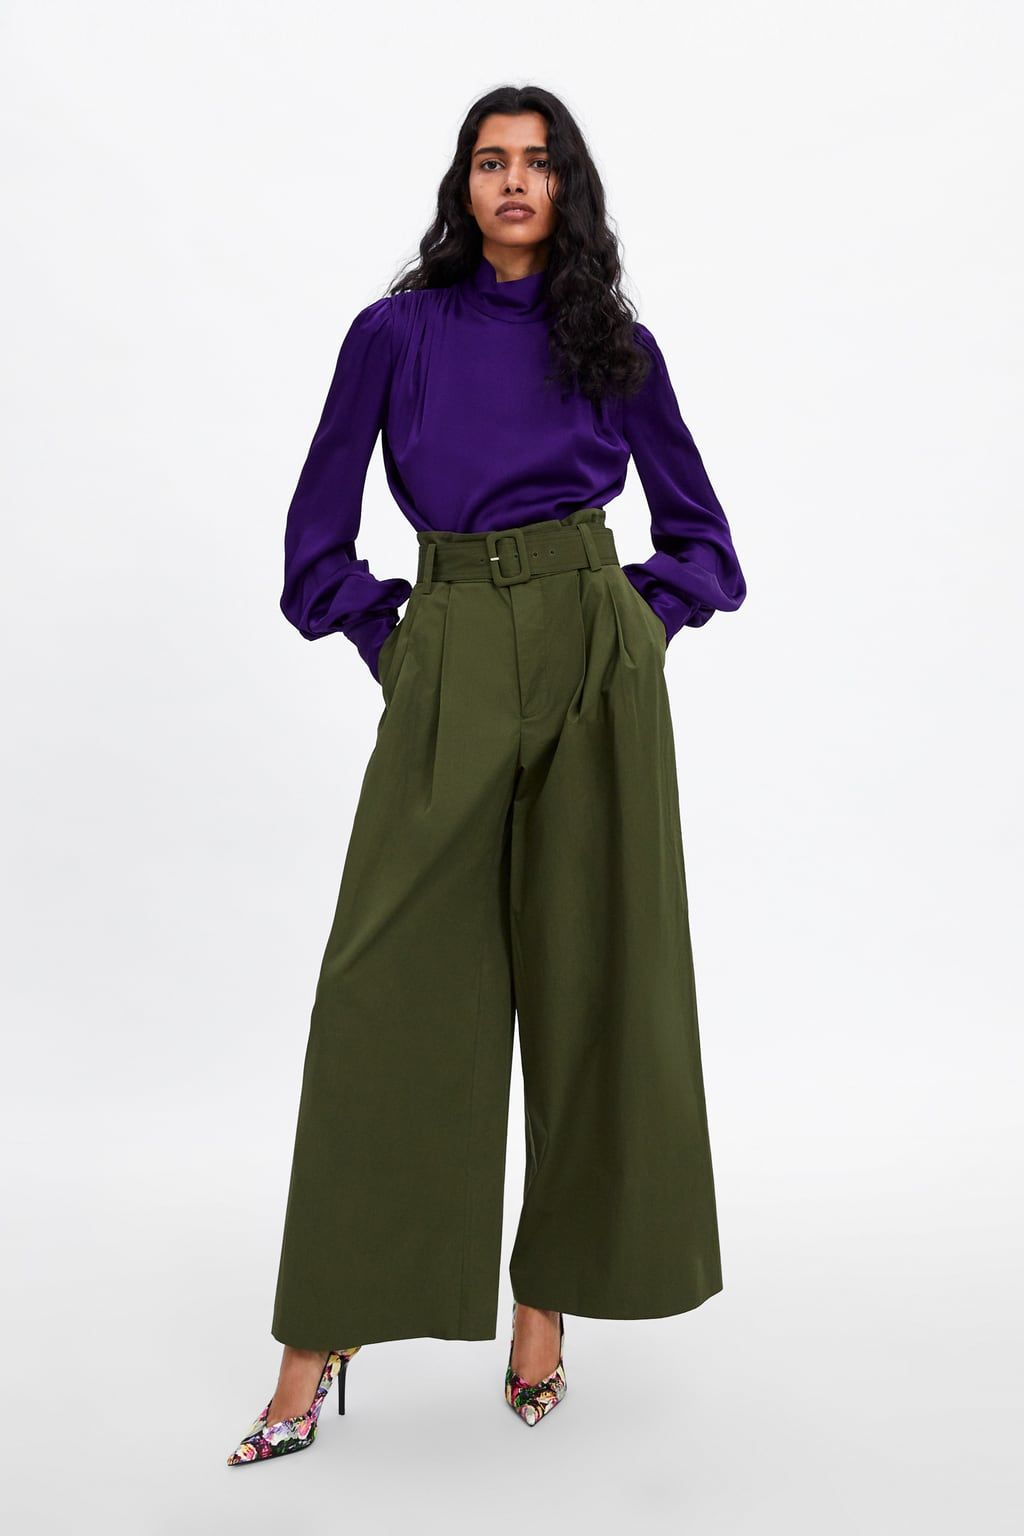 eefbddea94 Wide leg belted pants in 2019 | fashion inspiration | Wide trousers ...